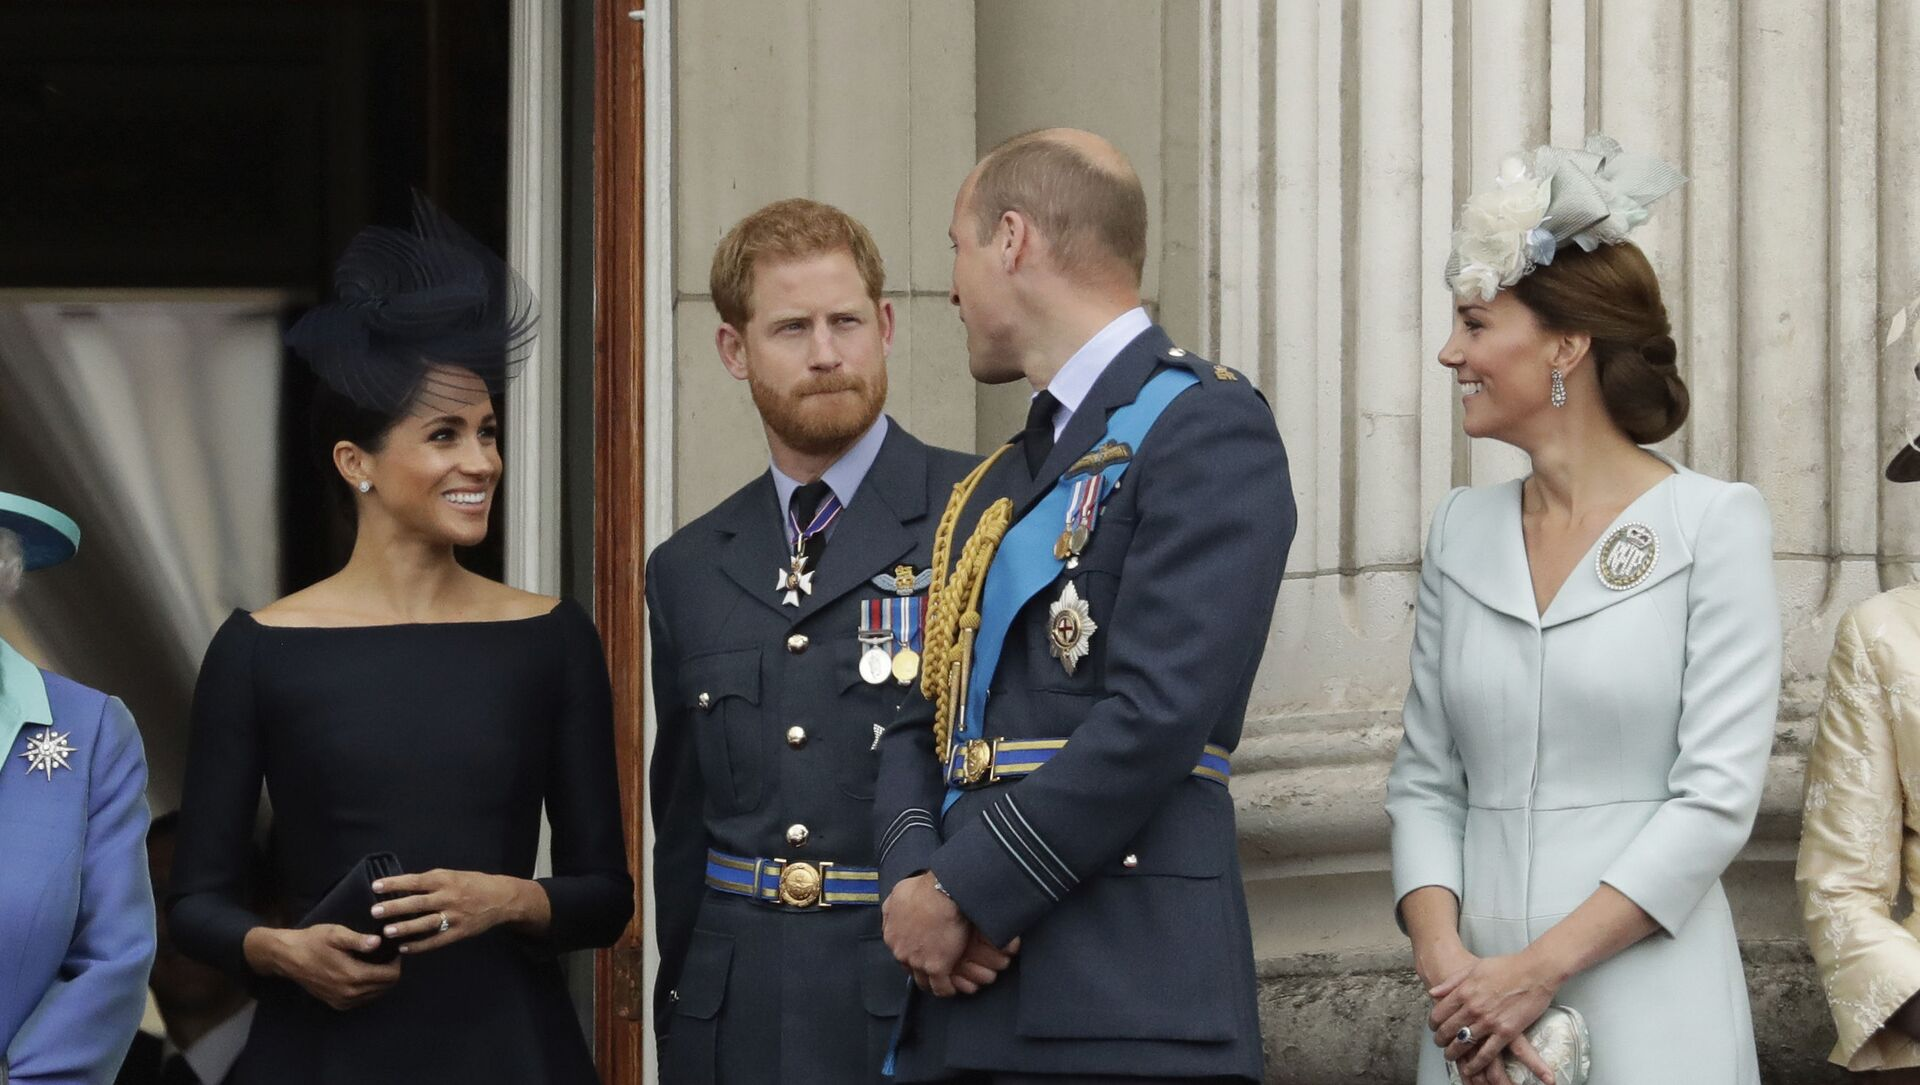 Meghan the Duchess of Sussex, left, Prince Harry, second left, Prince William and Kate the Duchess of Cambridge watch a flypast of Royal Air Force aircraft pass over Buckingham Palace in London, Tuesday, July 10, 2018 - Sputnik International, 1920, 26.06.2021